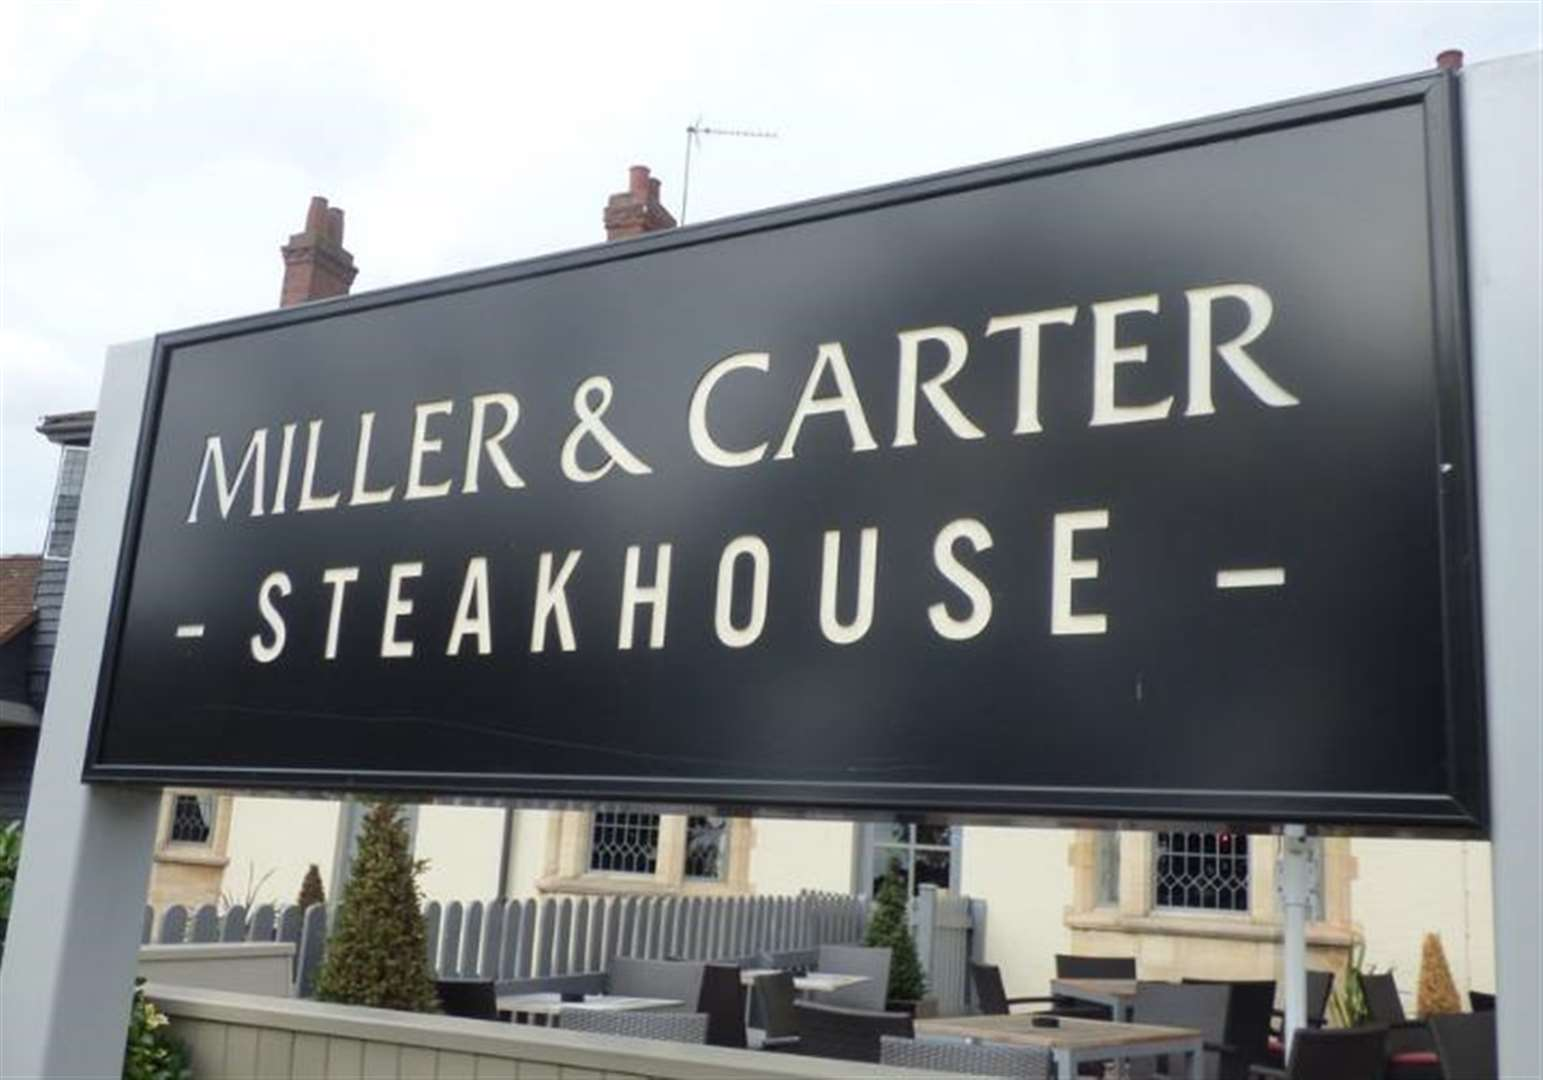 Mice and worms could scupper steakhouse plan